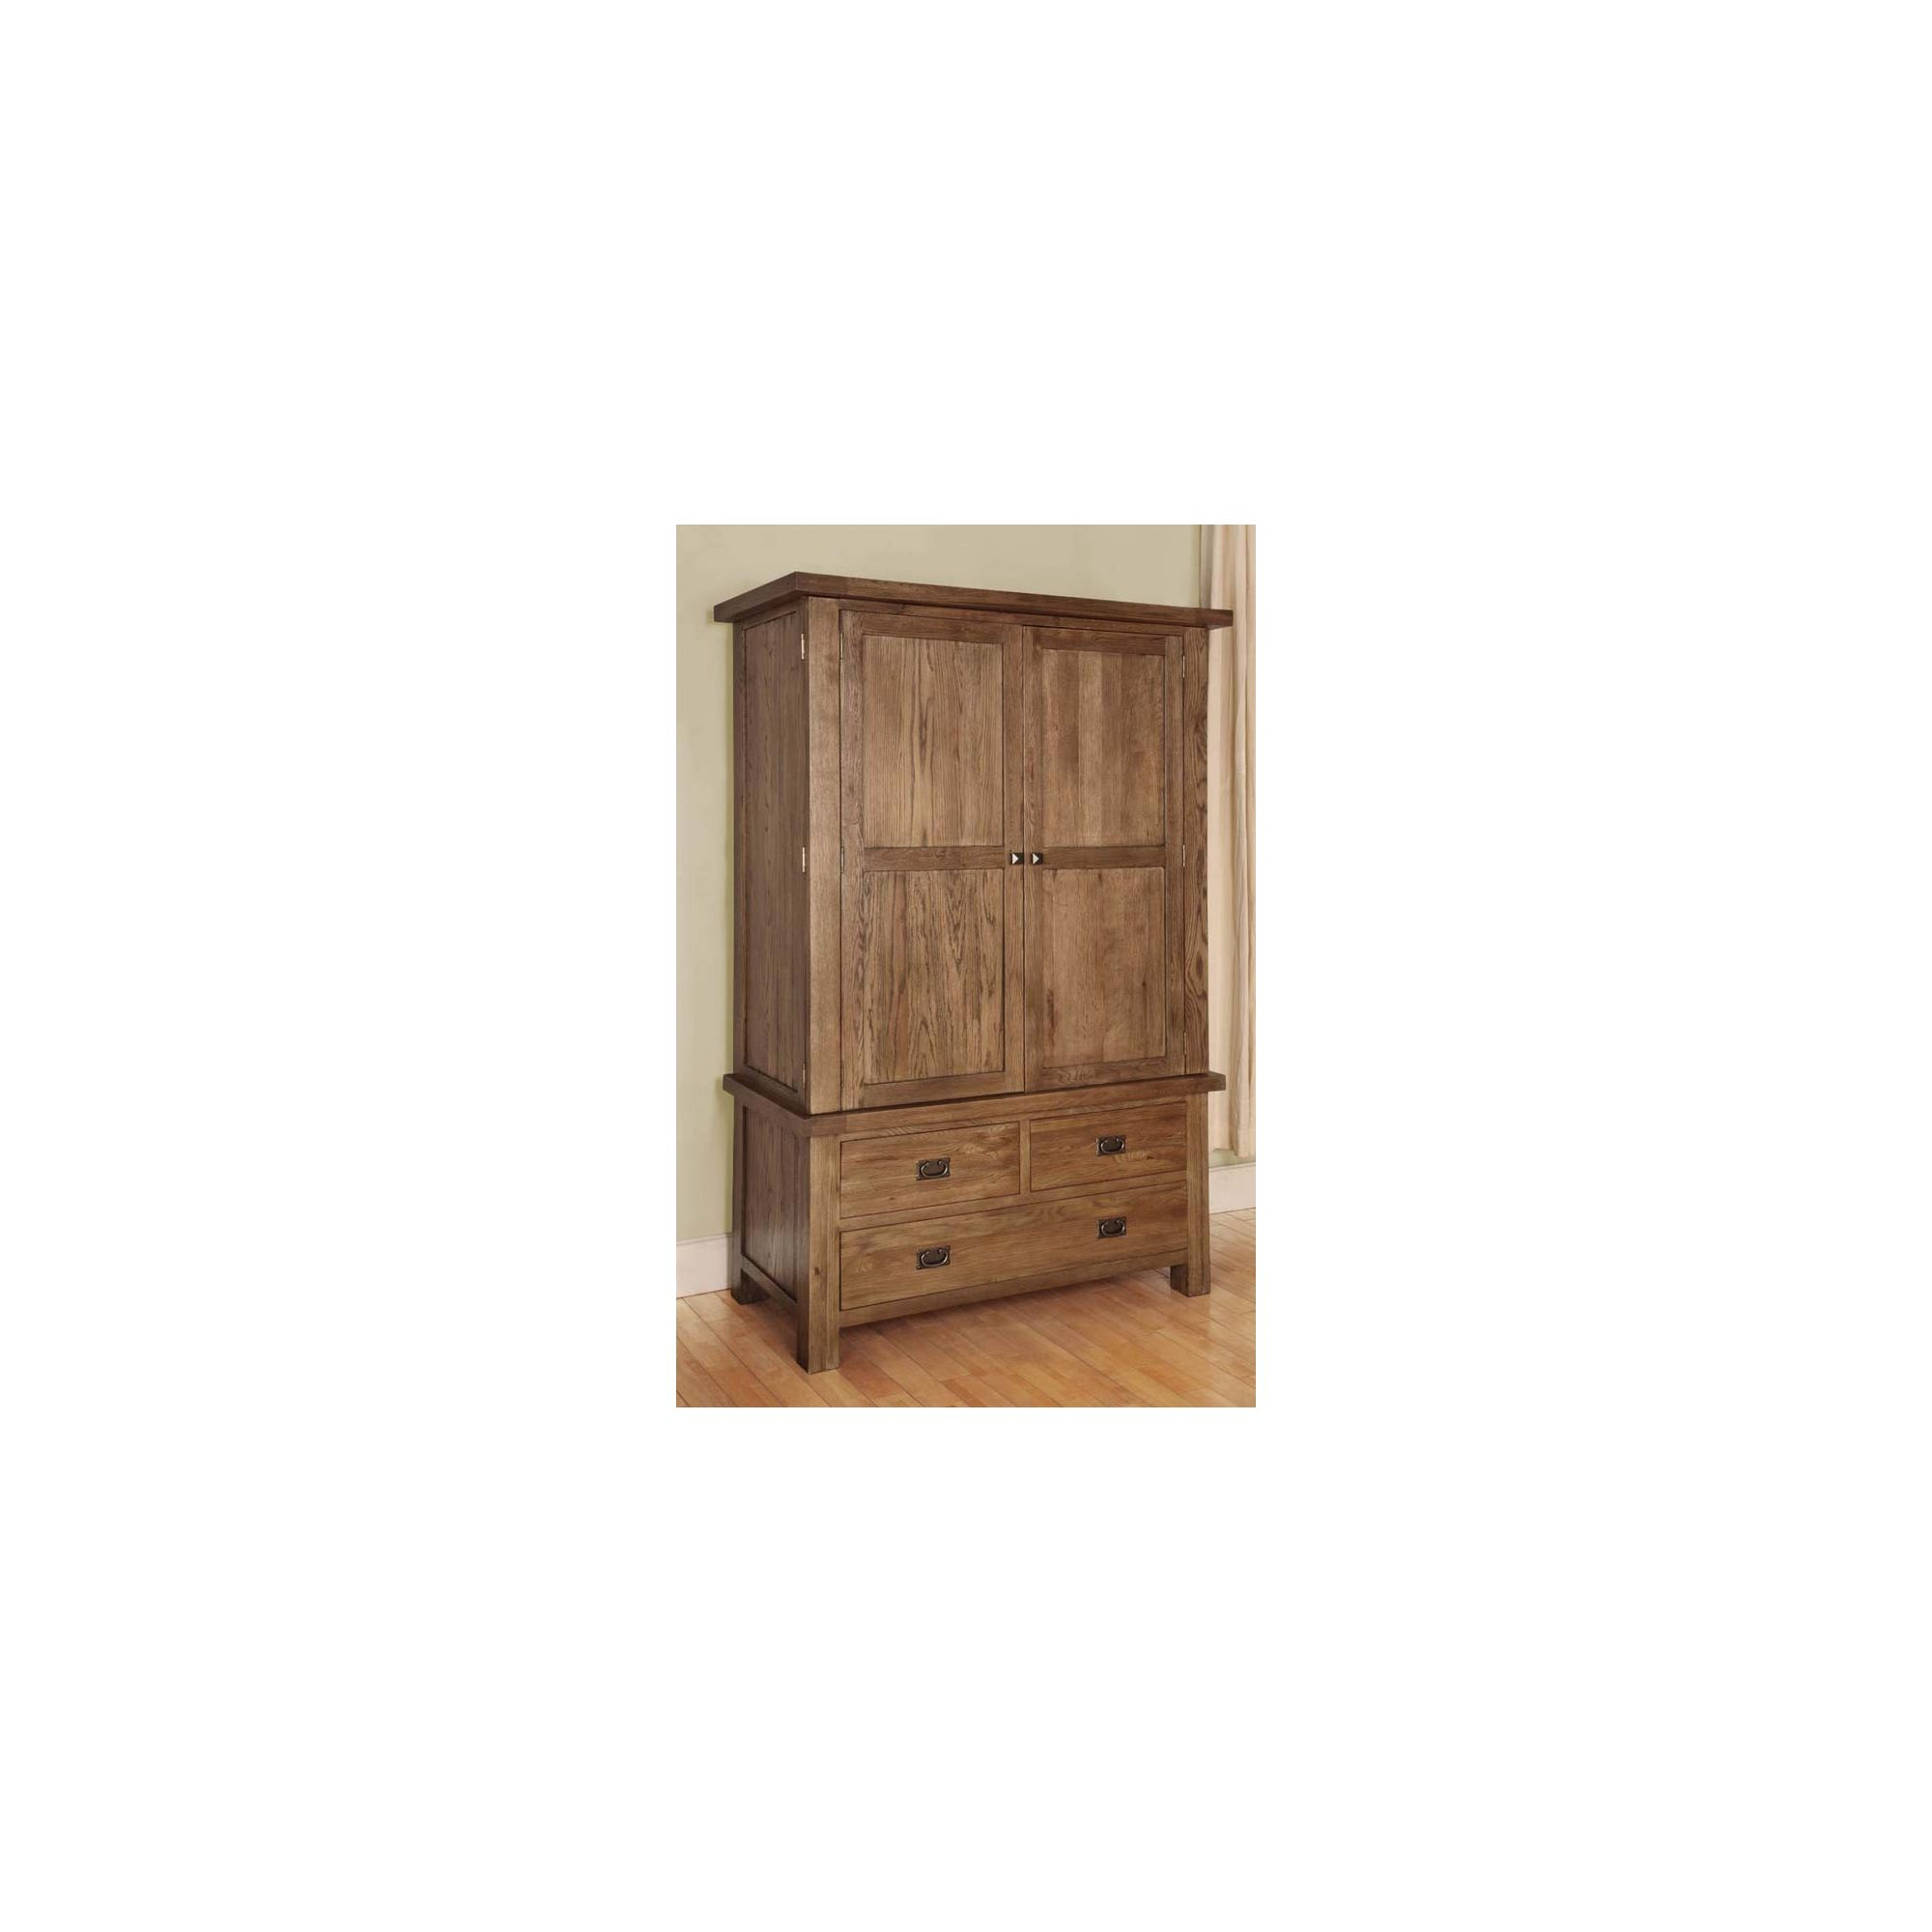 Hawkshead Brooklyn Double Wardrobe in Rich Patina at Tescos Direct